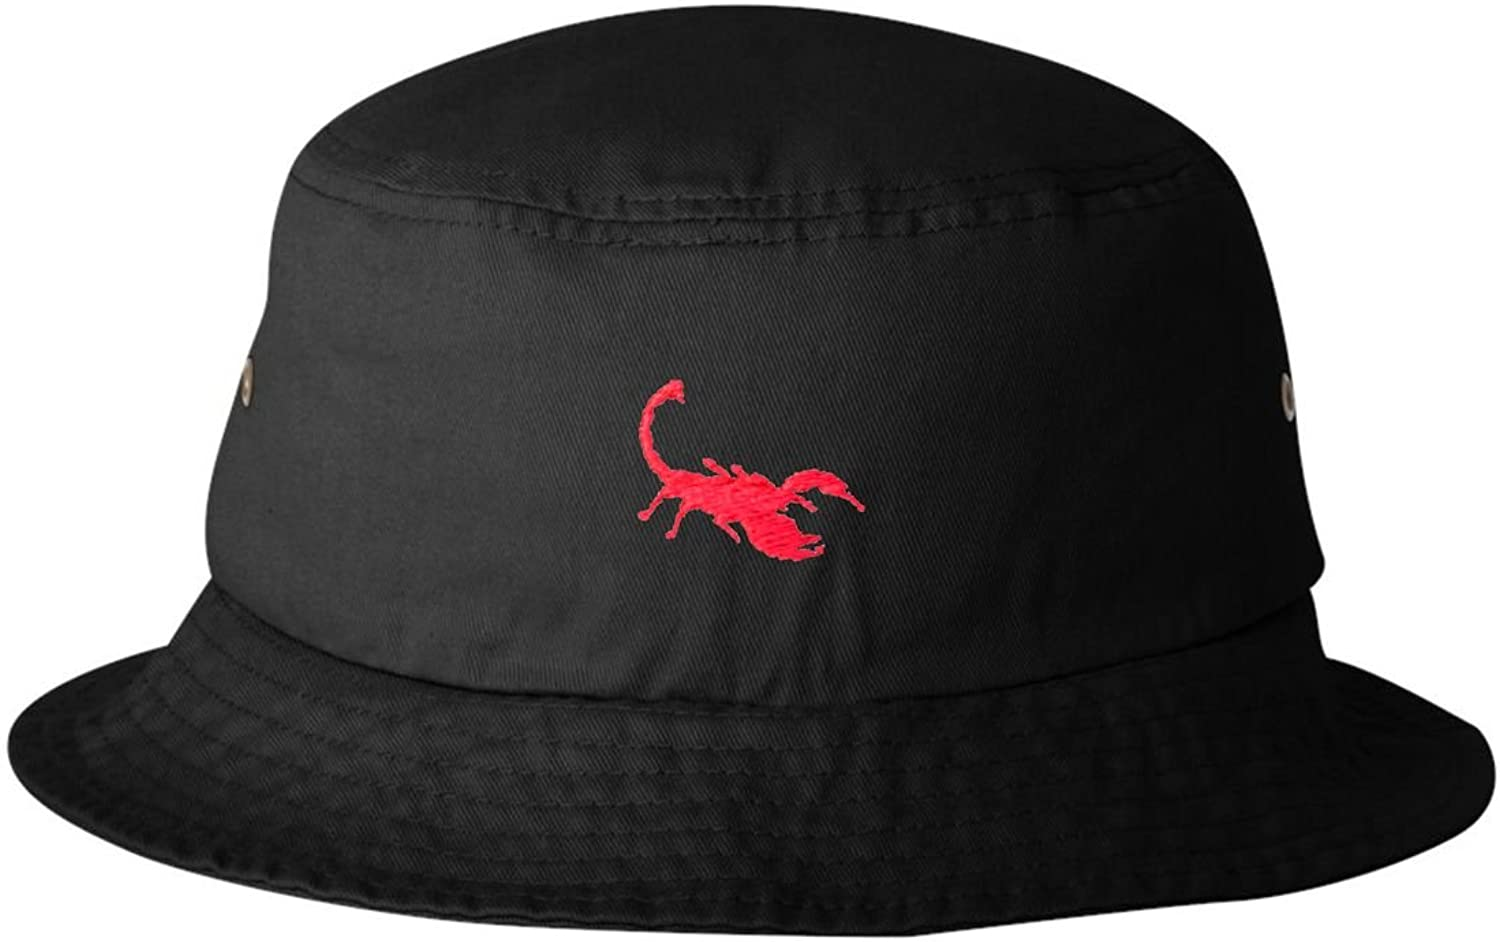 Go All Out Adult Max 54% OFF Scorpion Cap 2021new shipping free shipping Embroidered Bucket Hat Dad